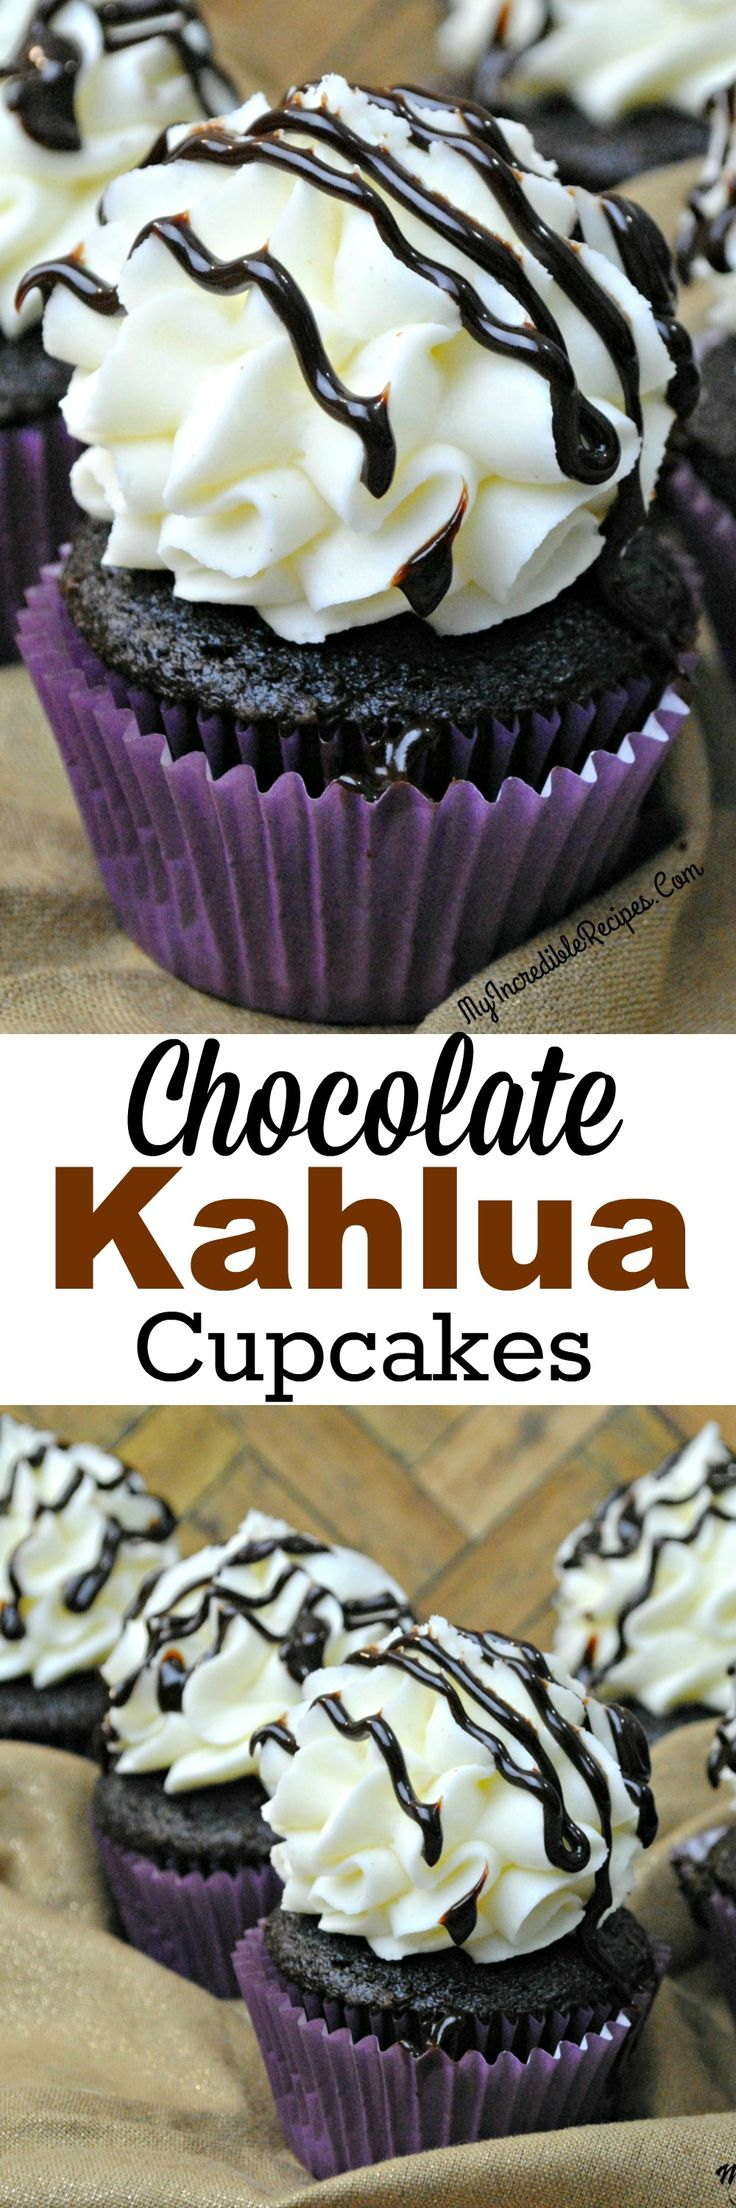 Chocolate Kahlua Cupcakes!